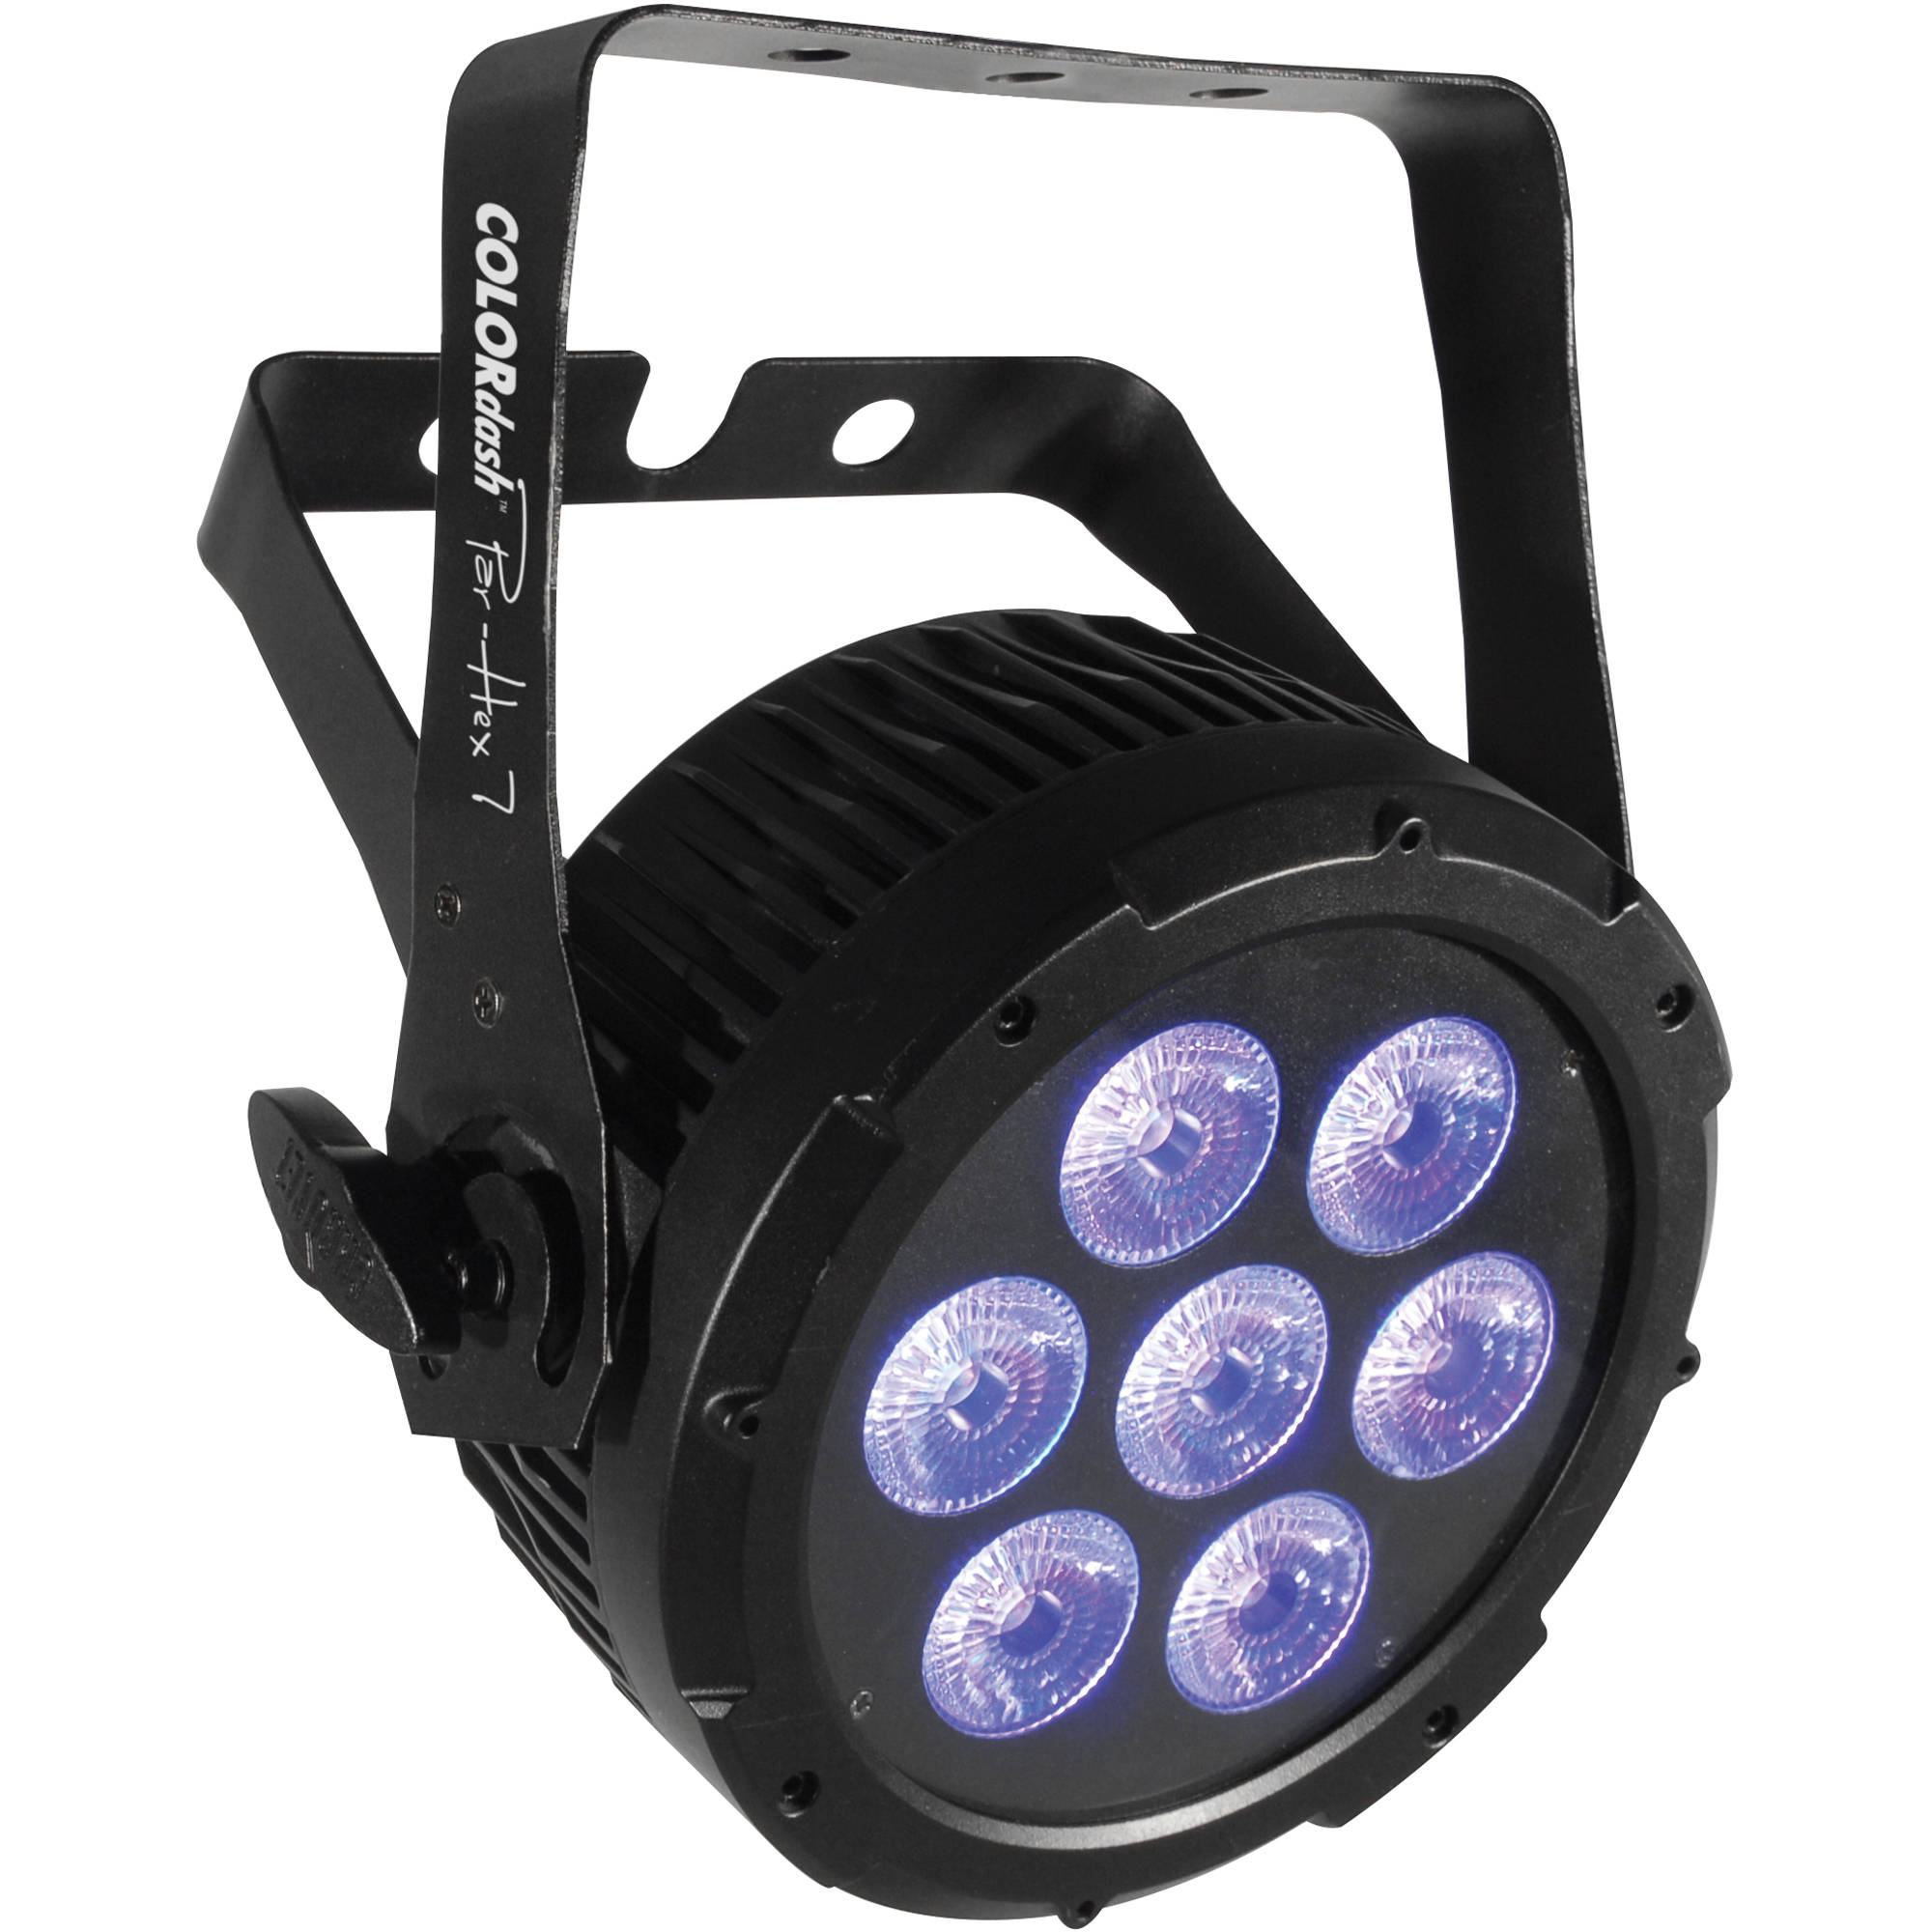 Chauvet Colordash Par Hex 7 -